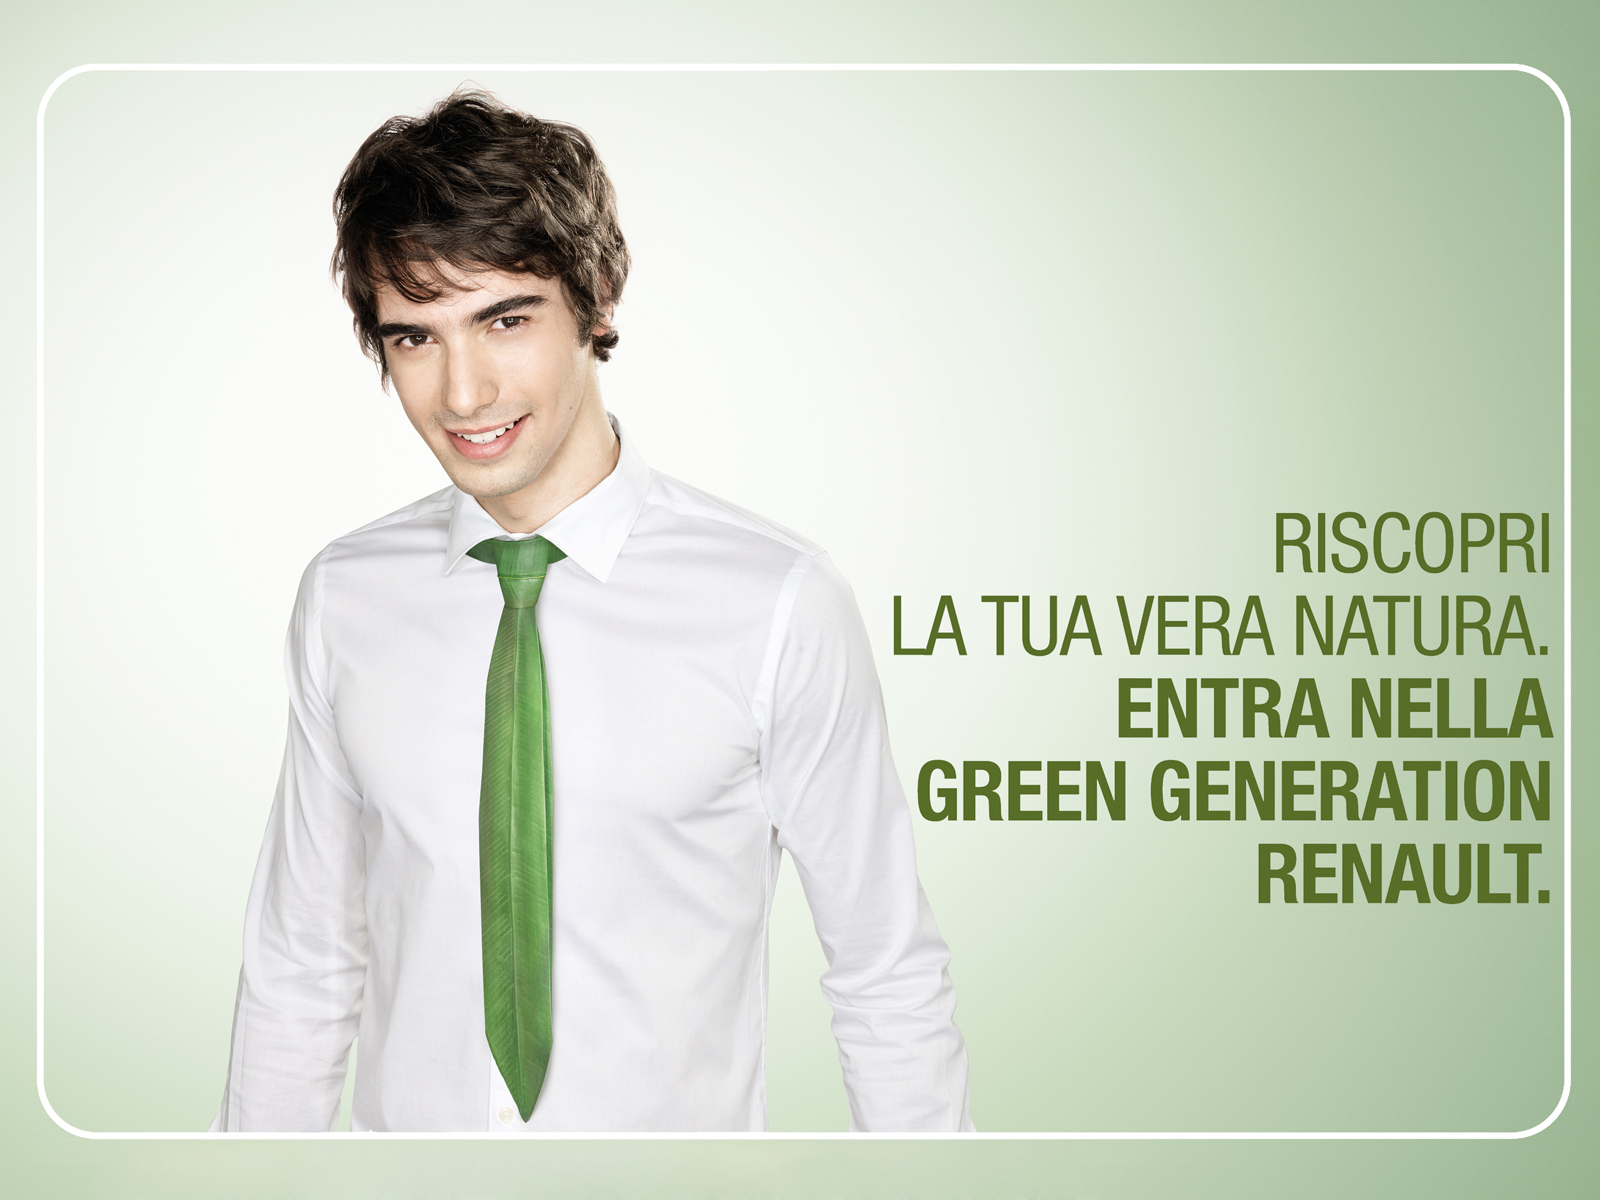 renault green generation_002